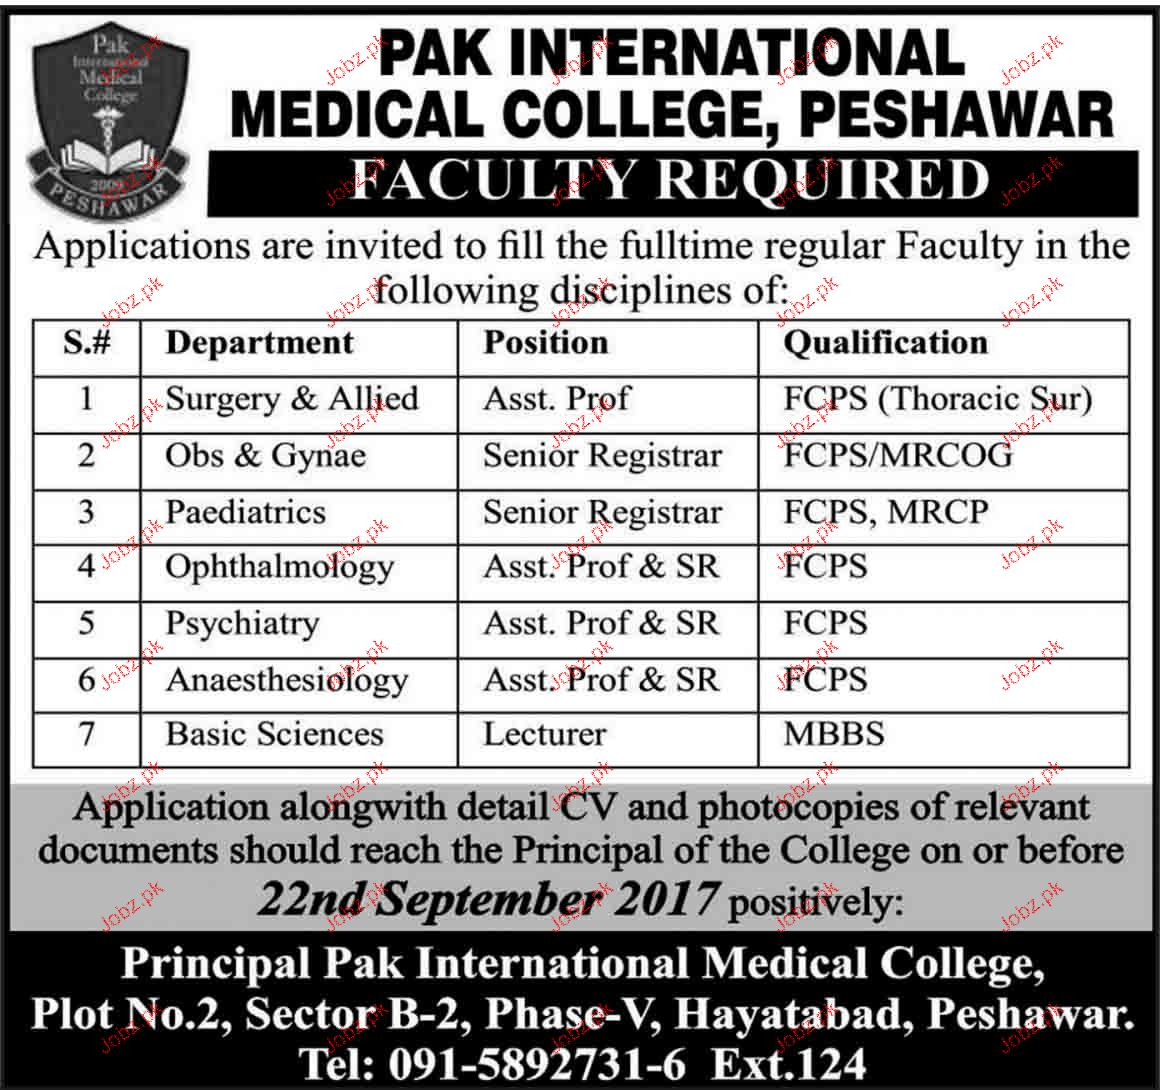 Assistant Professors, Senior Registrar  Job Opportunity